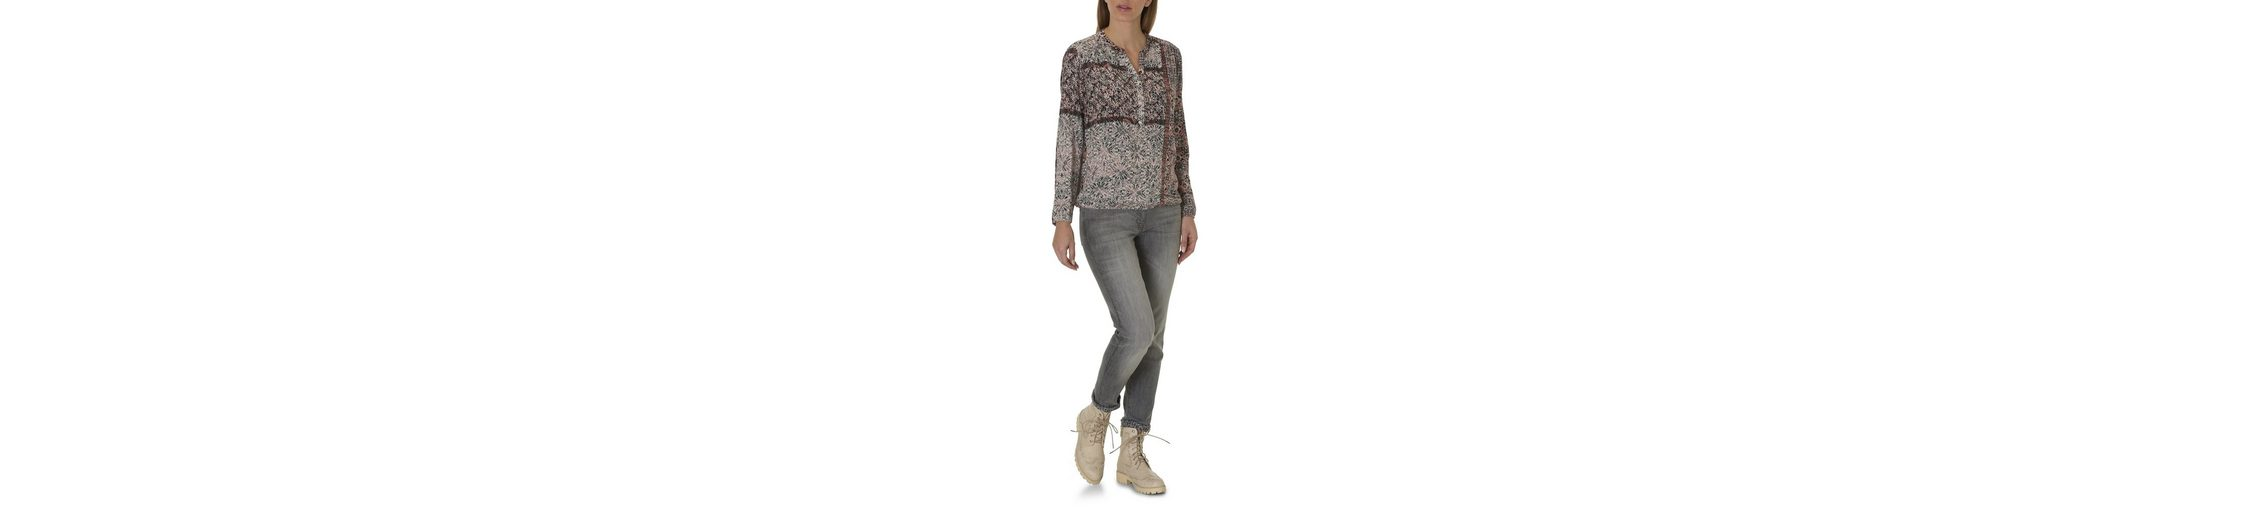 Mustermix Bluse Barclay Betty Betty mit Barclay qfPYv